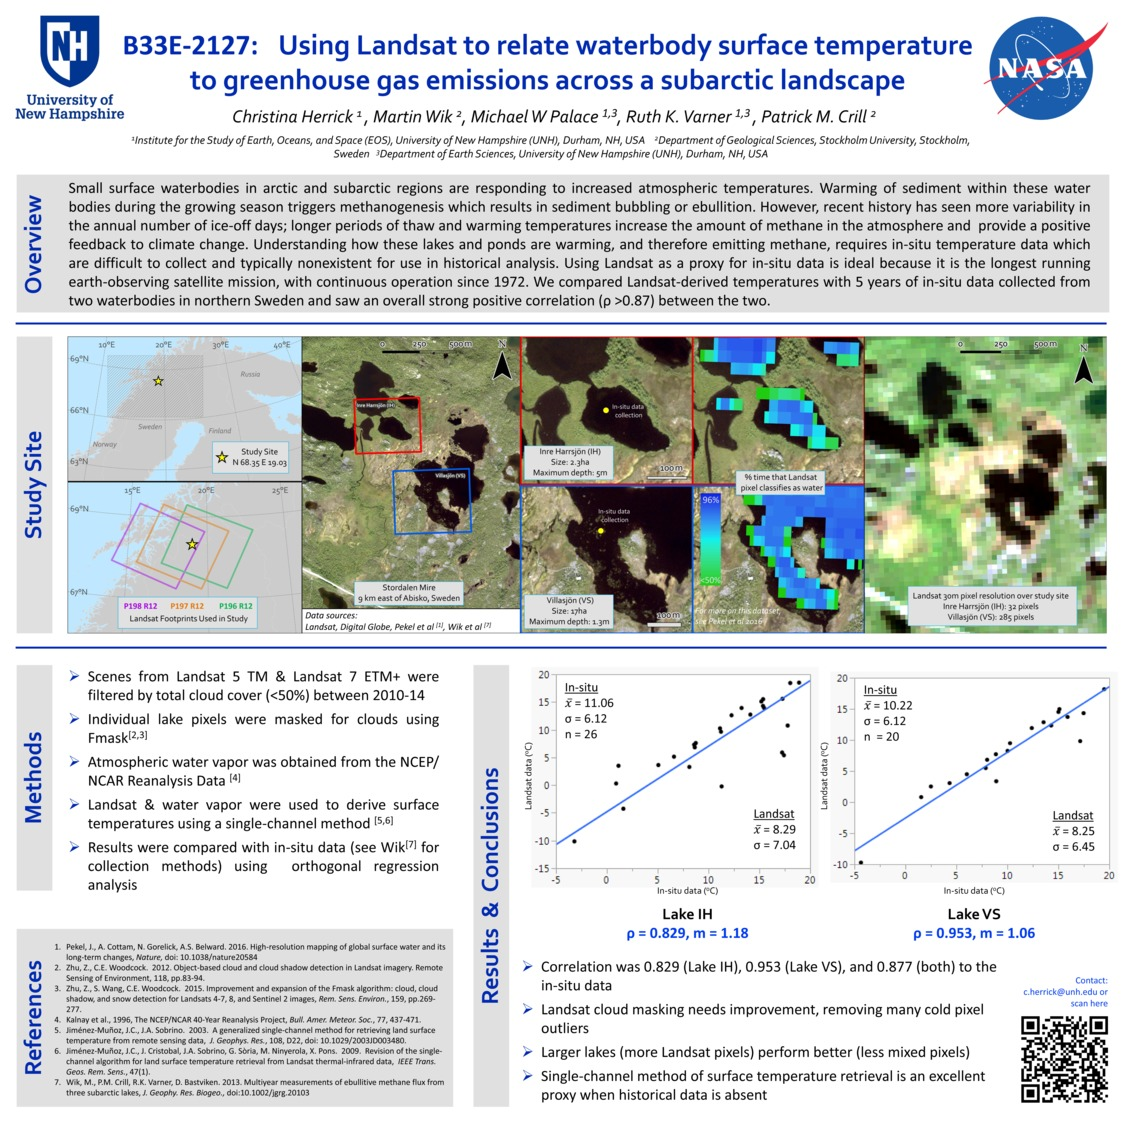 Using Landsat To Relate Waterbody Surface Temperature To Greenhouse Gas Emissions Across A Subarctic Landscape by herrick